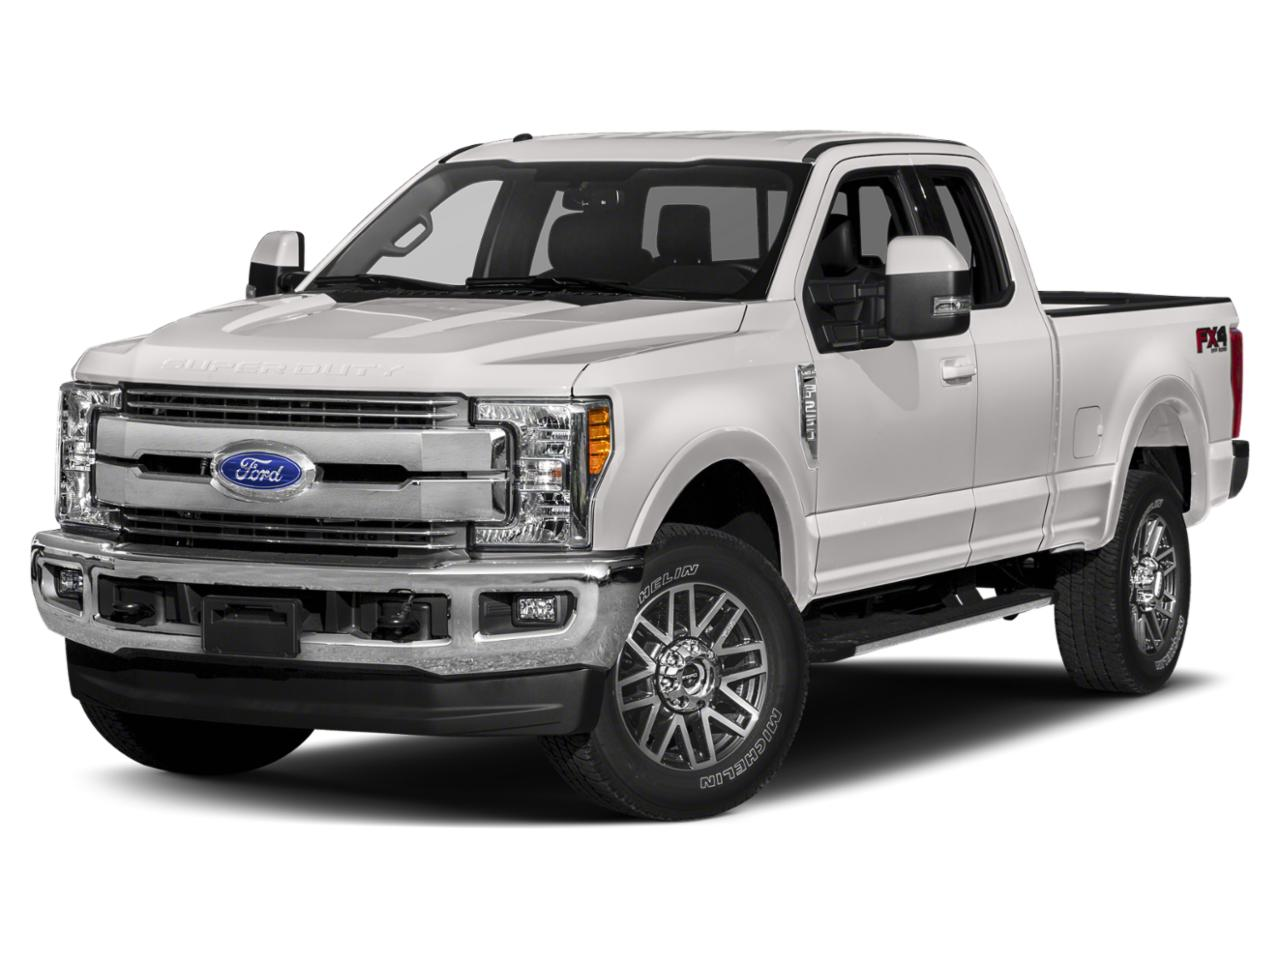 2019 Ford Super Duty F-350 SRW Vehicle Photo in Grand Rapids, MI 49512